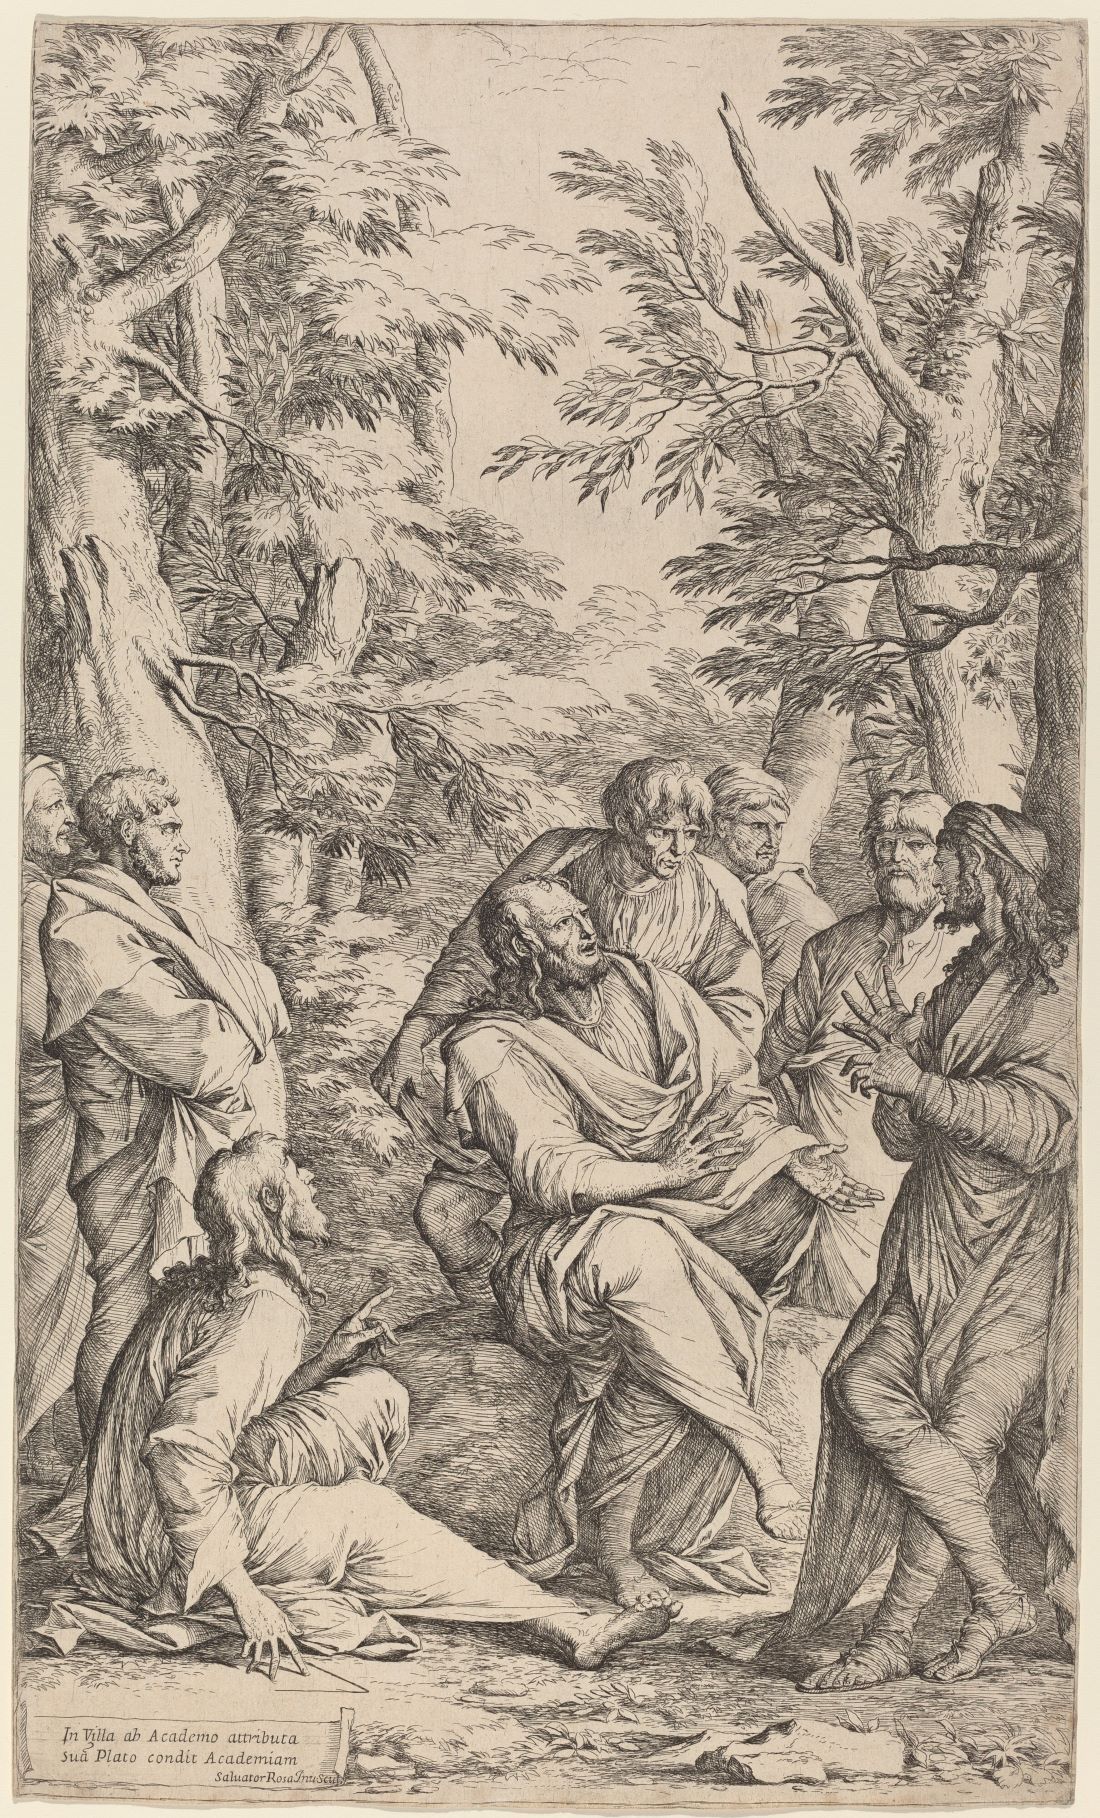 The Academy of Plato, by Salvator Rosa